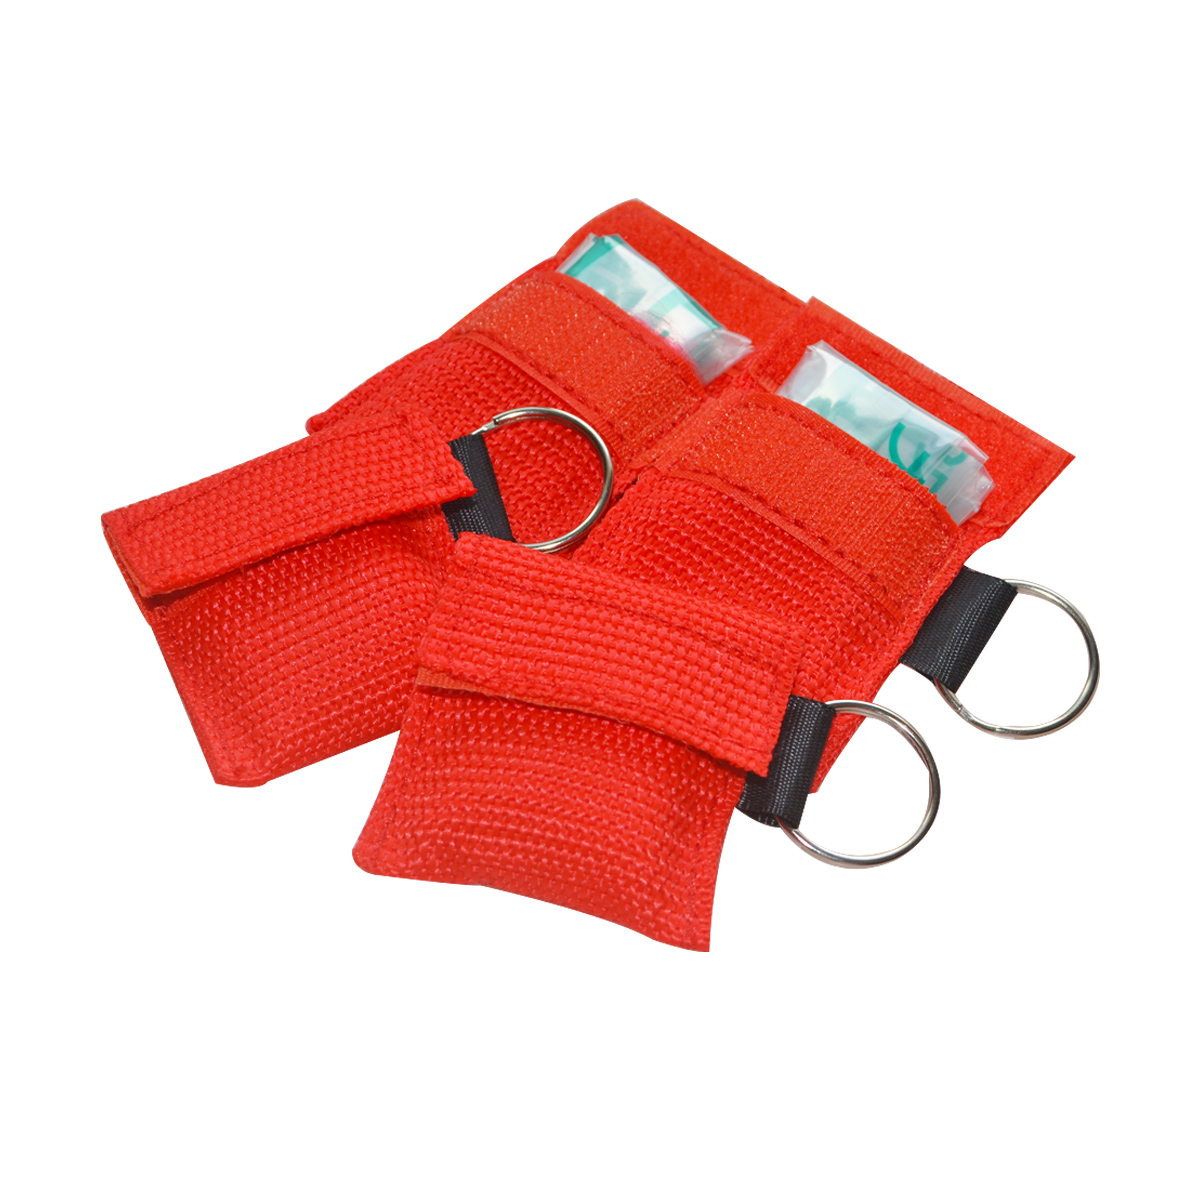 100pcs CPR Resuscitator Mask With Keychain Red Woven Bag First Aid Face Shield Artificial Respiration Barrier